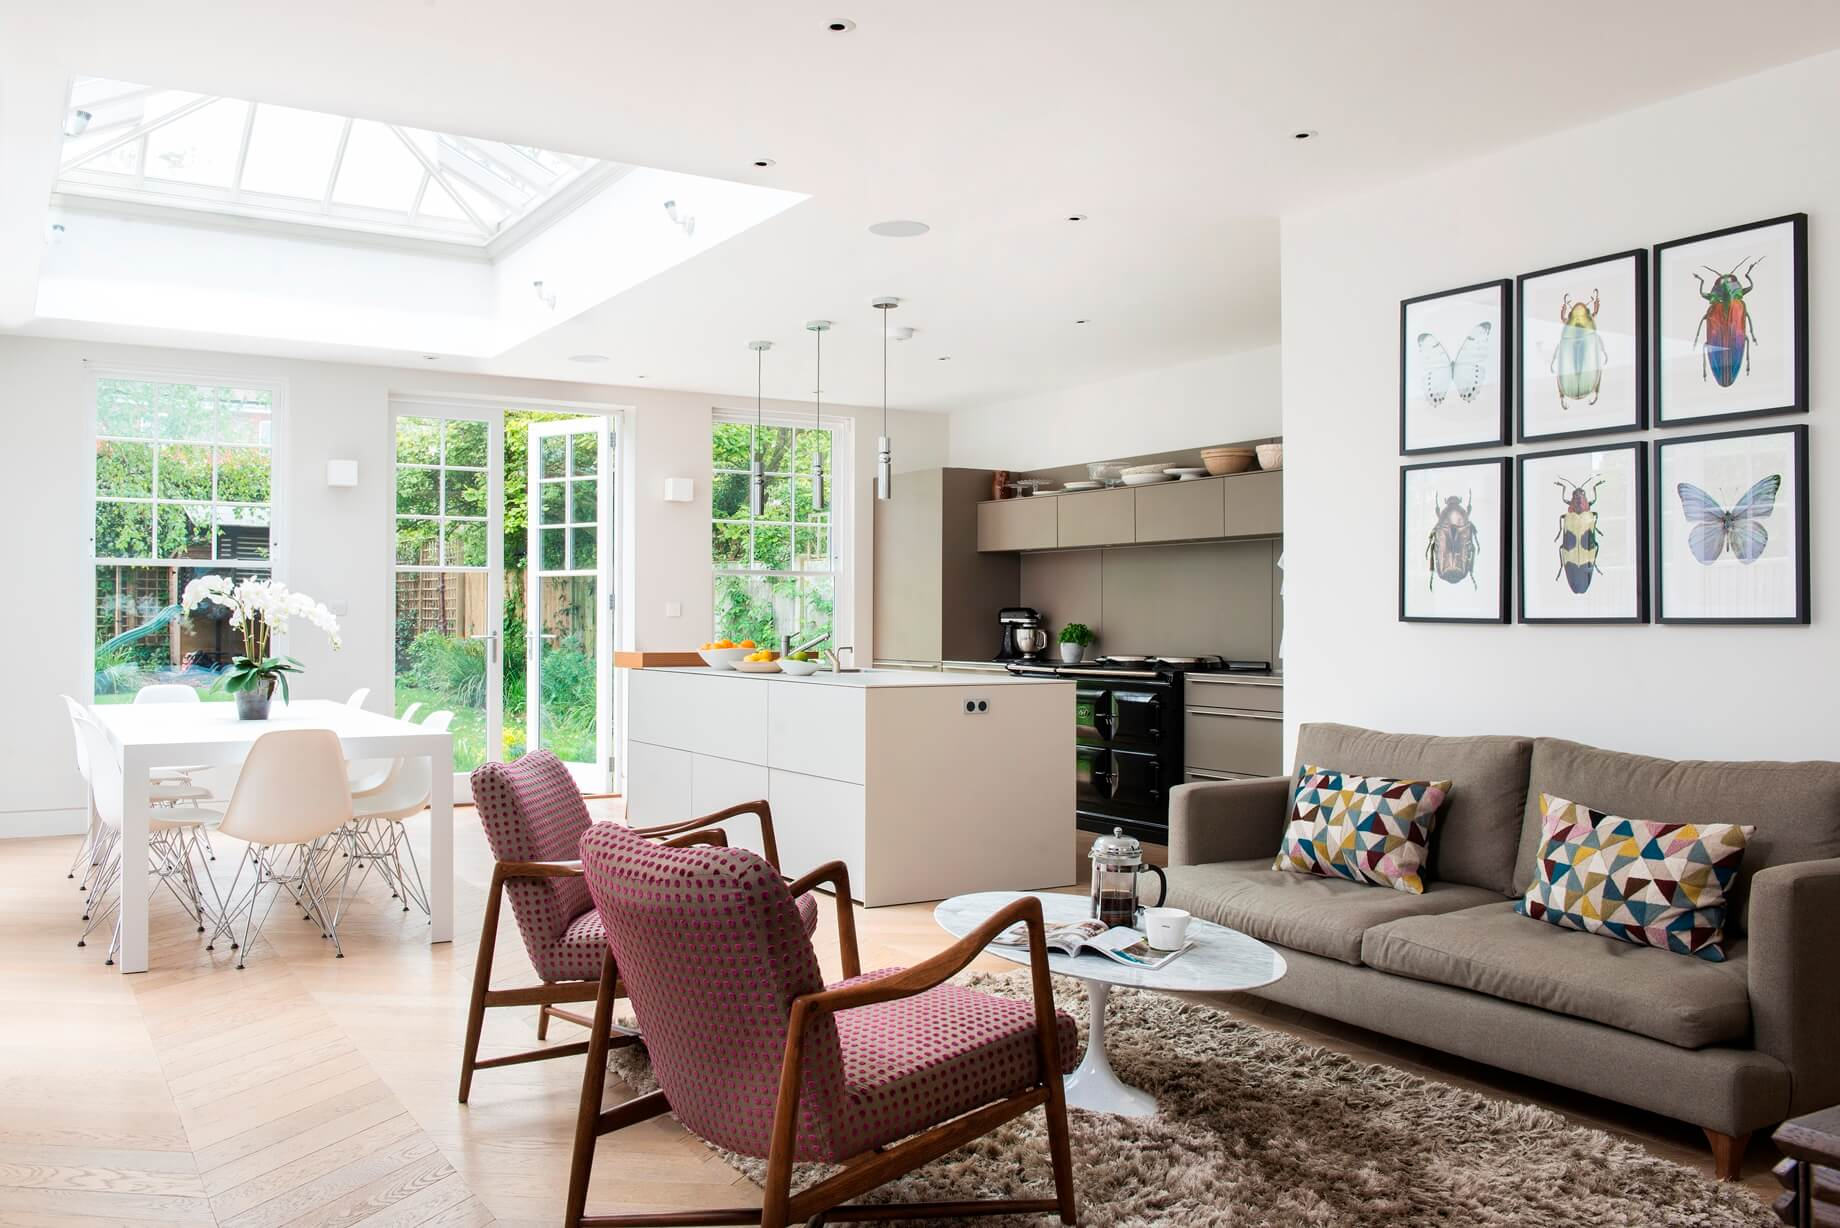 Alex Cotton Interiors - Edwardian Family Home Putney South West London